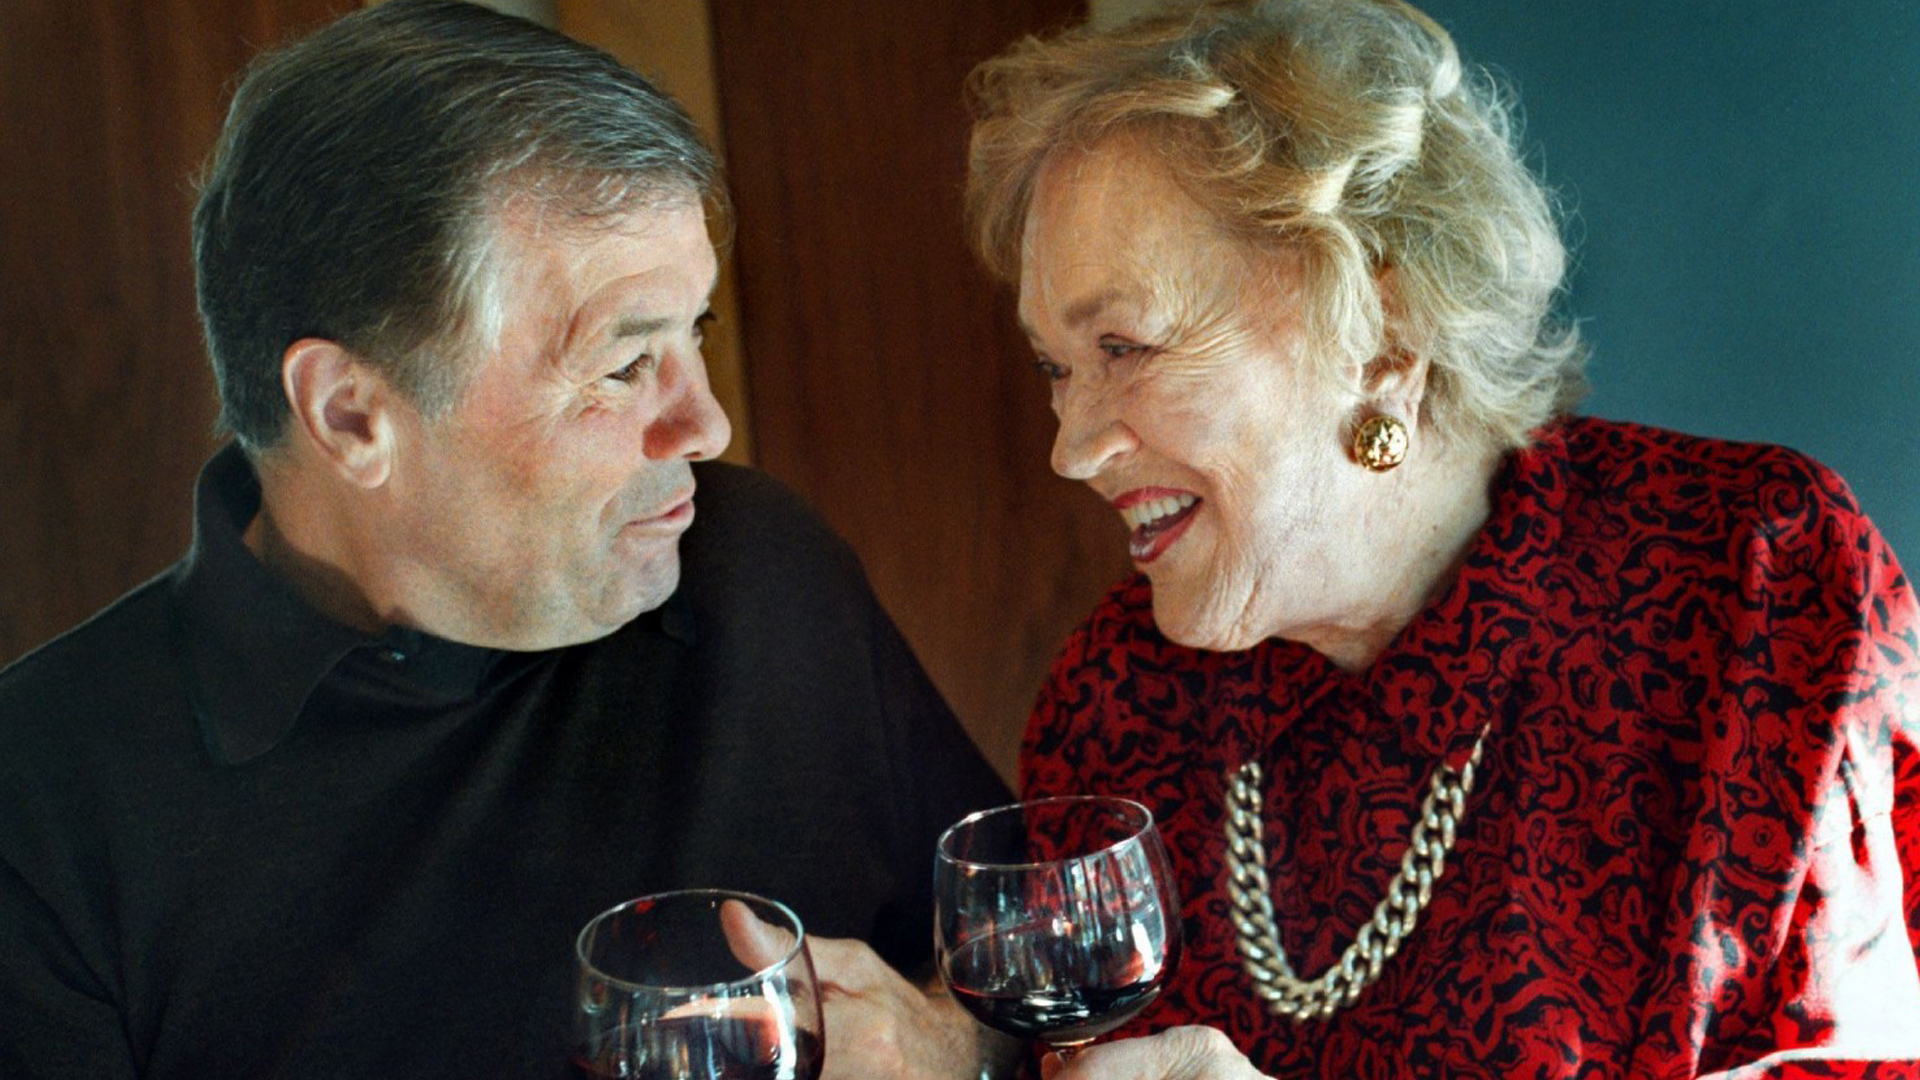 Jacques Pepin and Julia Childs